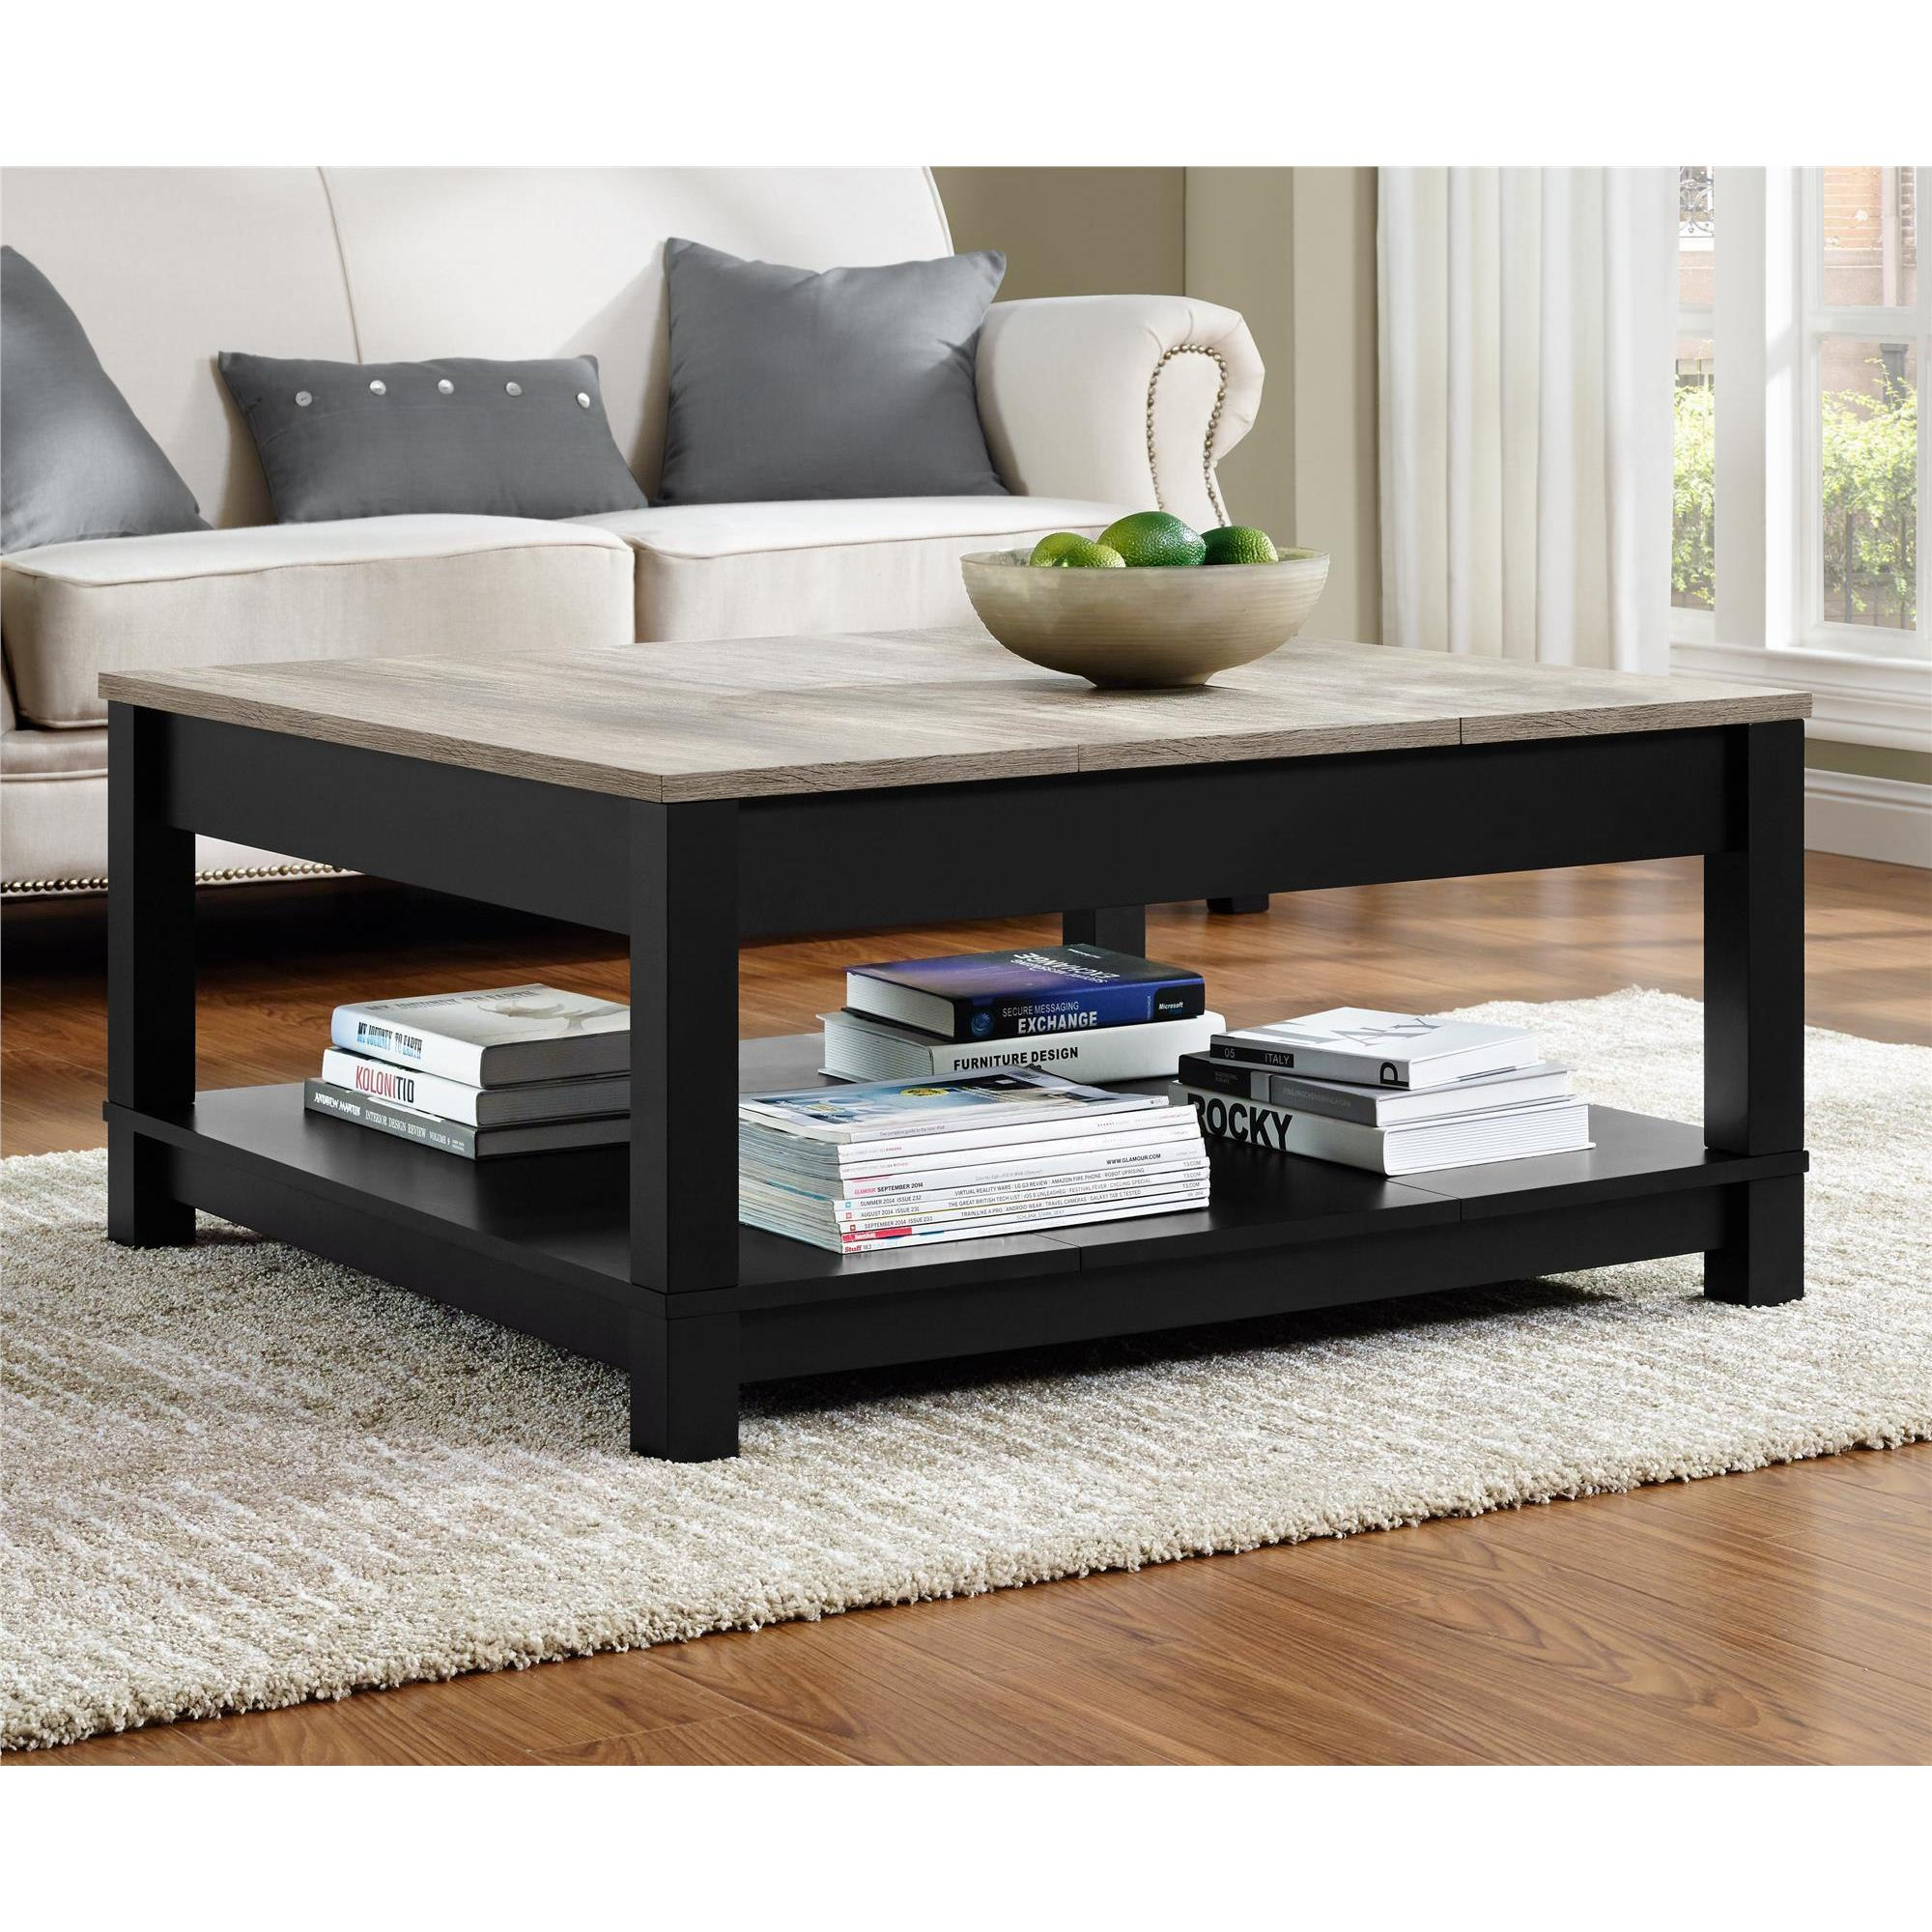 Square Distressed Finish Coffee Table Living Room Rustic Top Center Wood